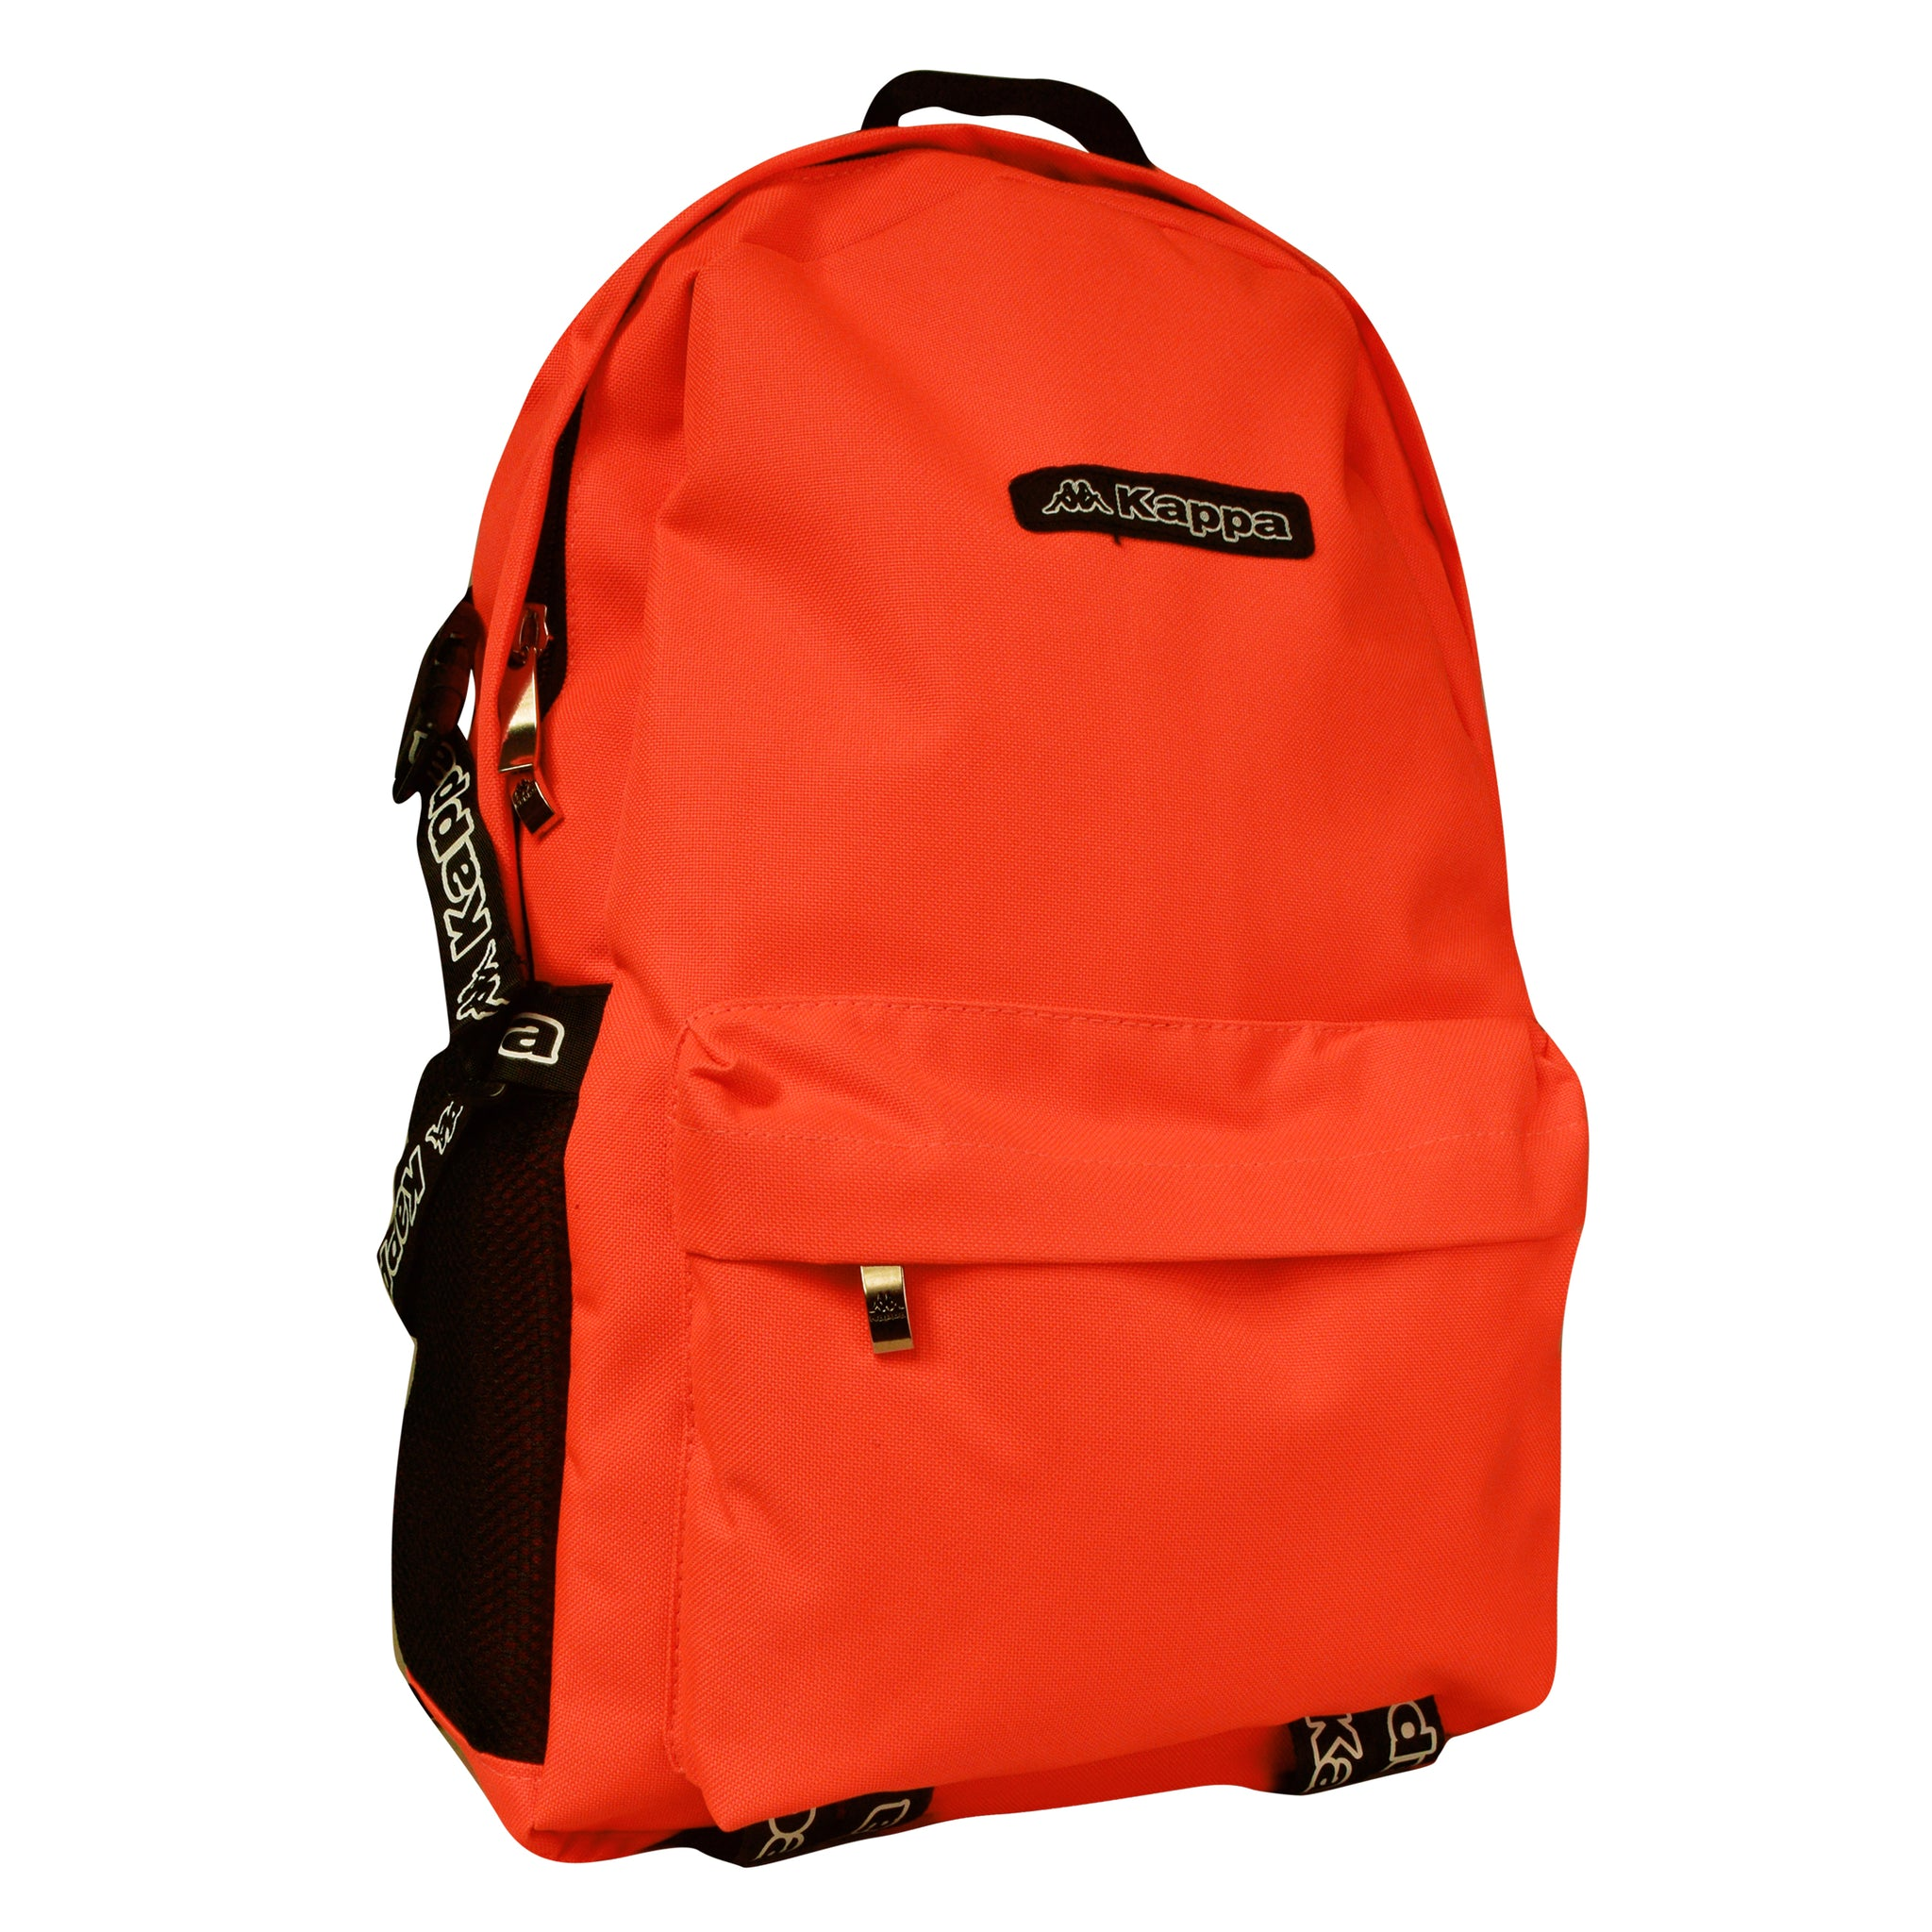 BackPack Lifestyle MTG001-4